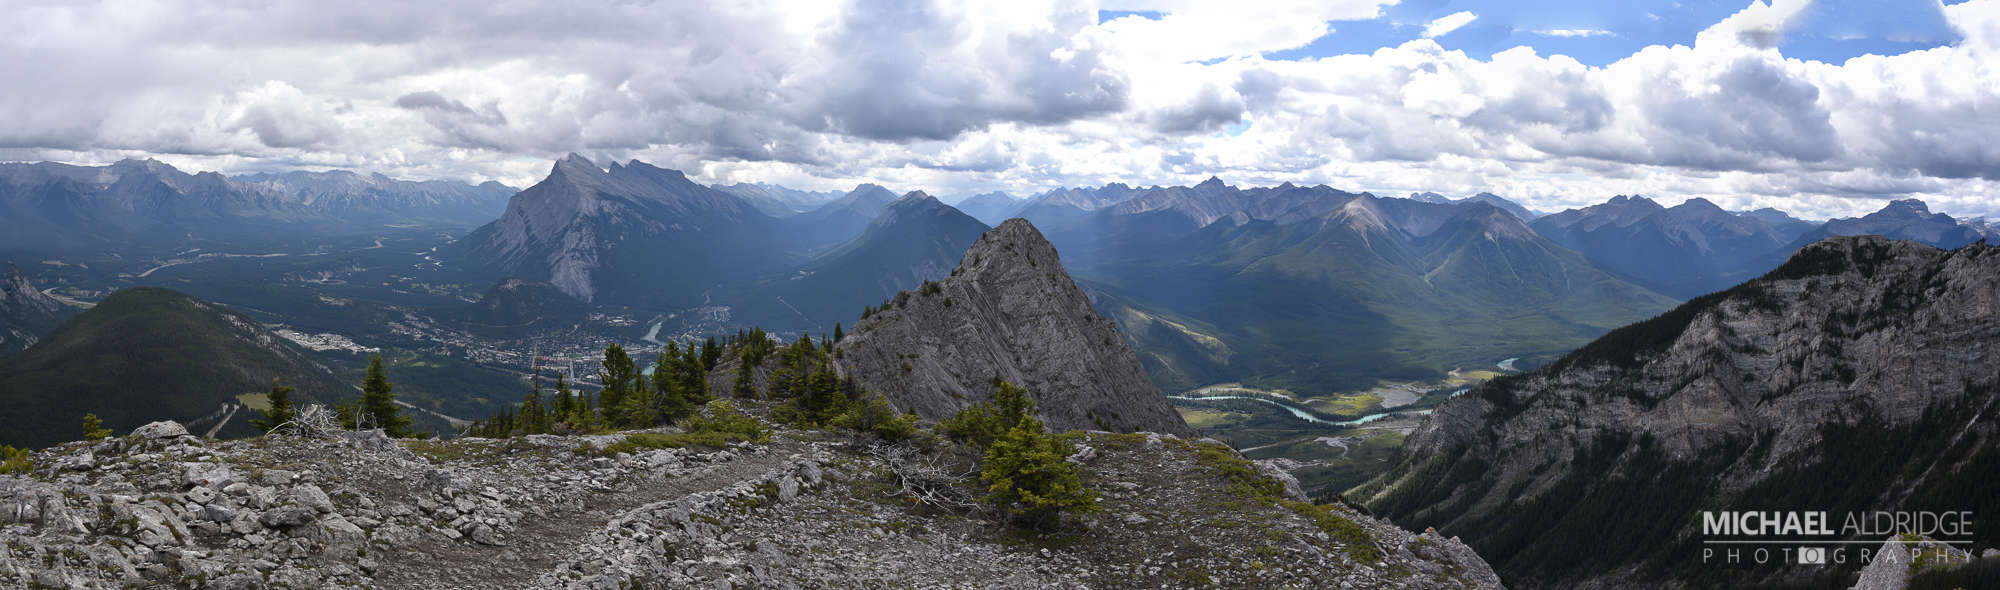 Panoramic view from the top of Mt. Norquay, Banff, Canada